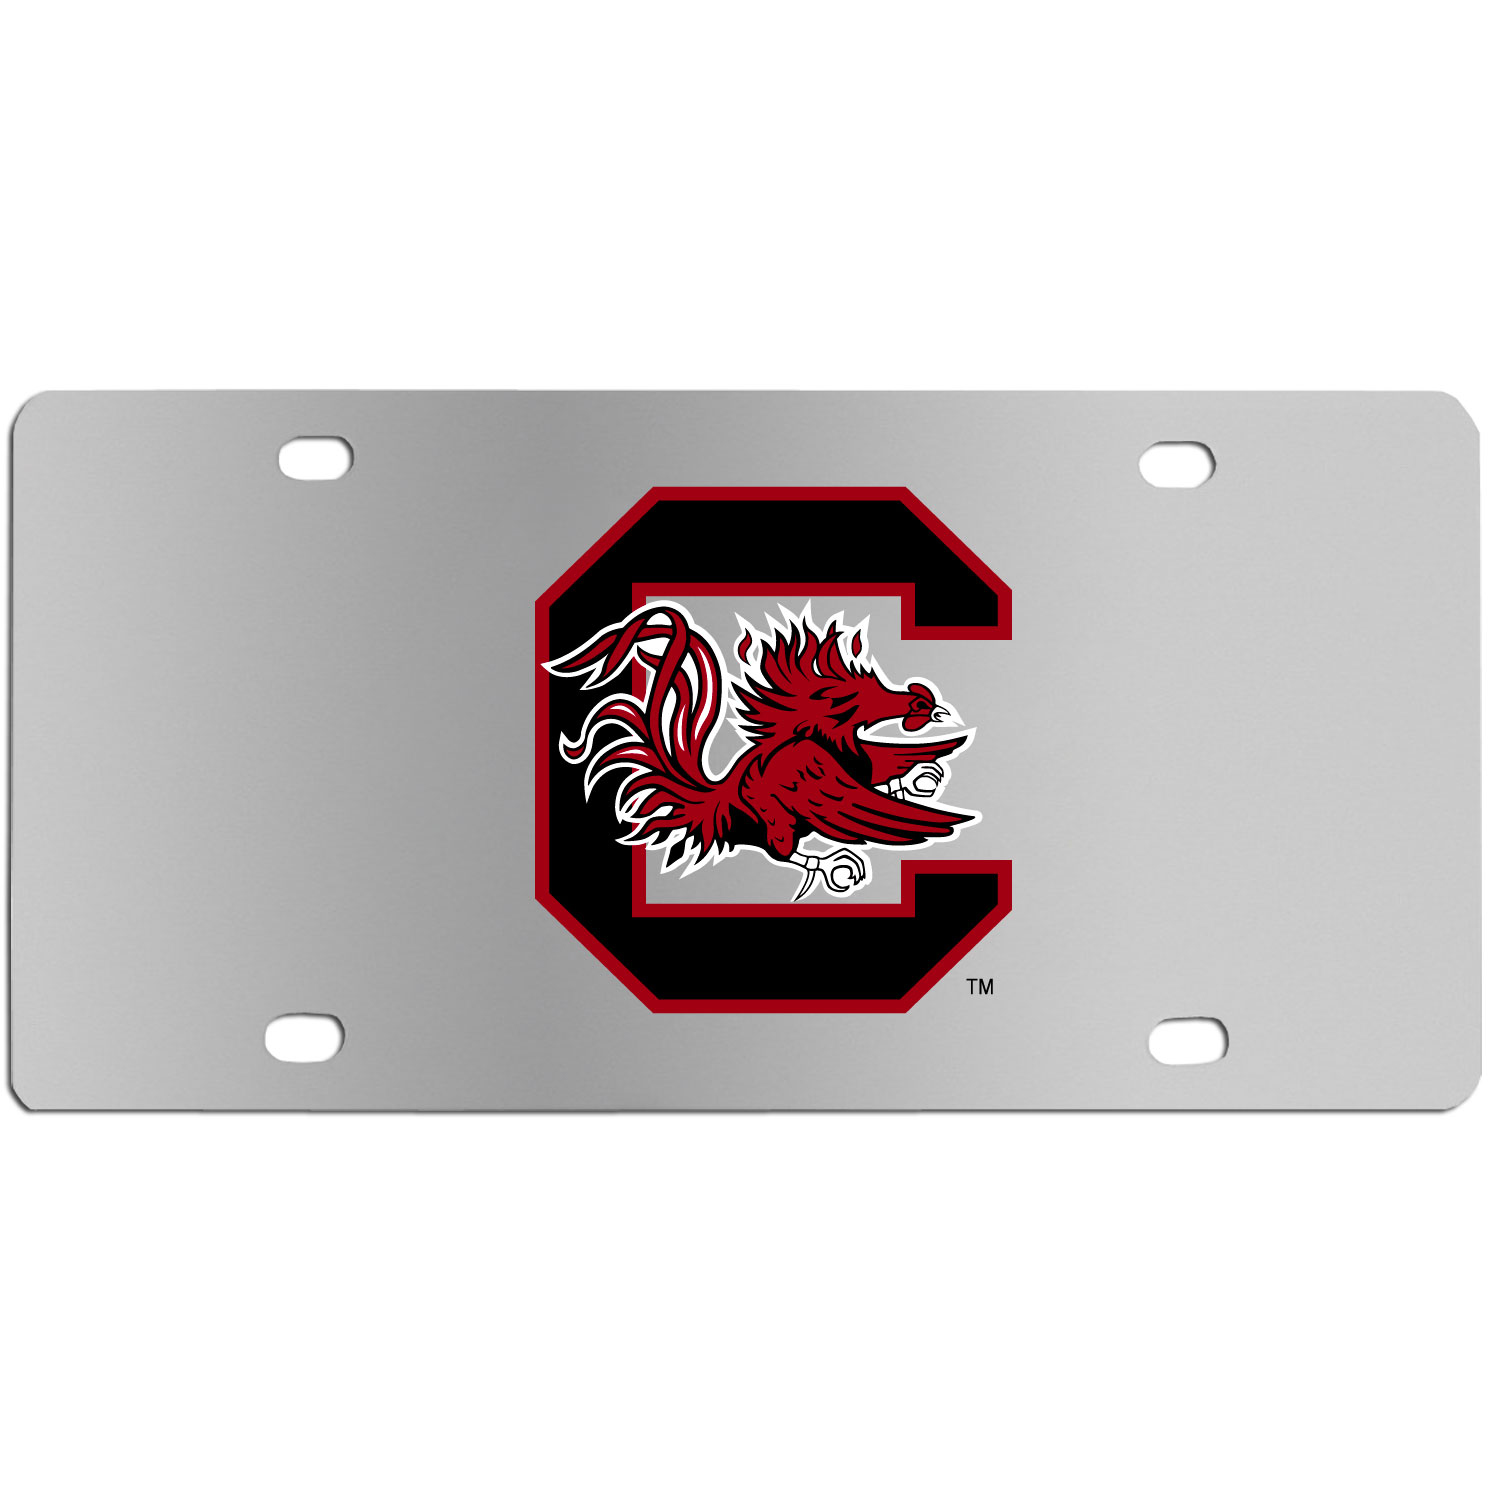 S. Carolina Gamecocks Steel License Plate Wall Plaque - This high-quality stainless steel license plate features a detailed team logo on a the polished surface. The attractive plate is perfect for wall mounting in your home or office to become the perfect die-hard S. Carolina Gamecocks fan decor.